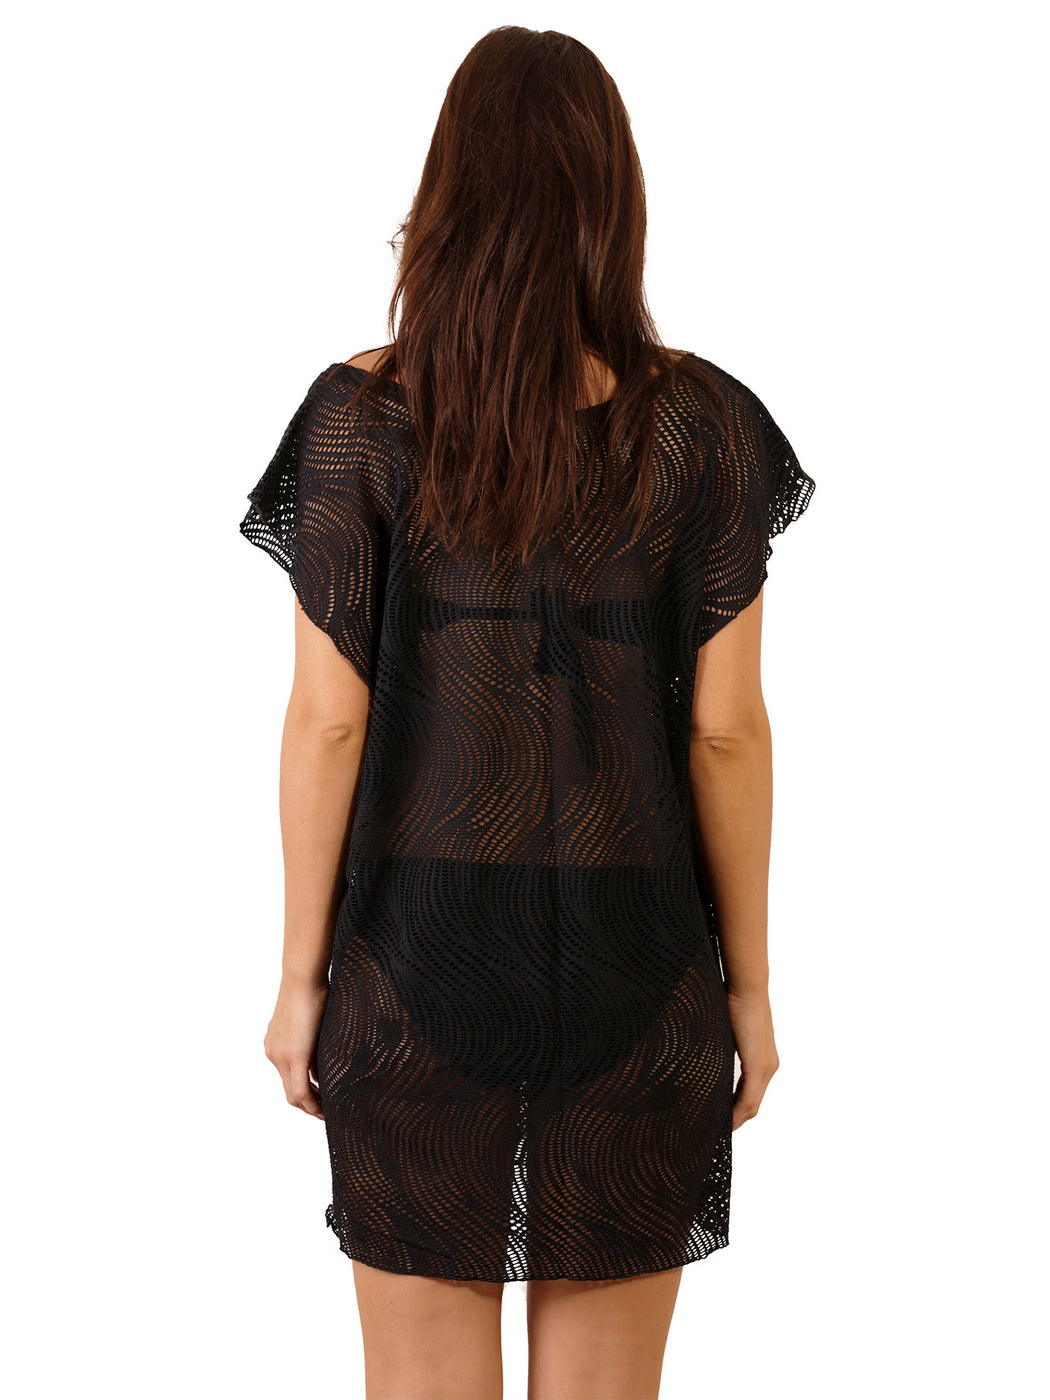 Back view of Santorini Lace Cover Up in Black